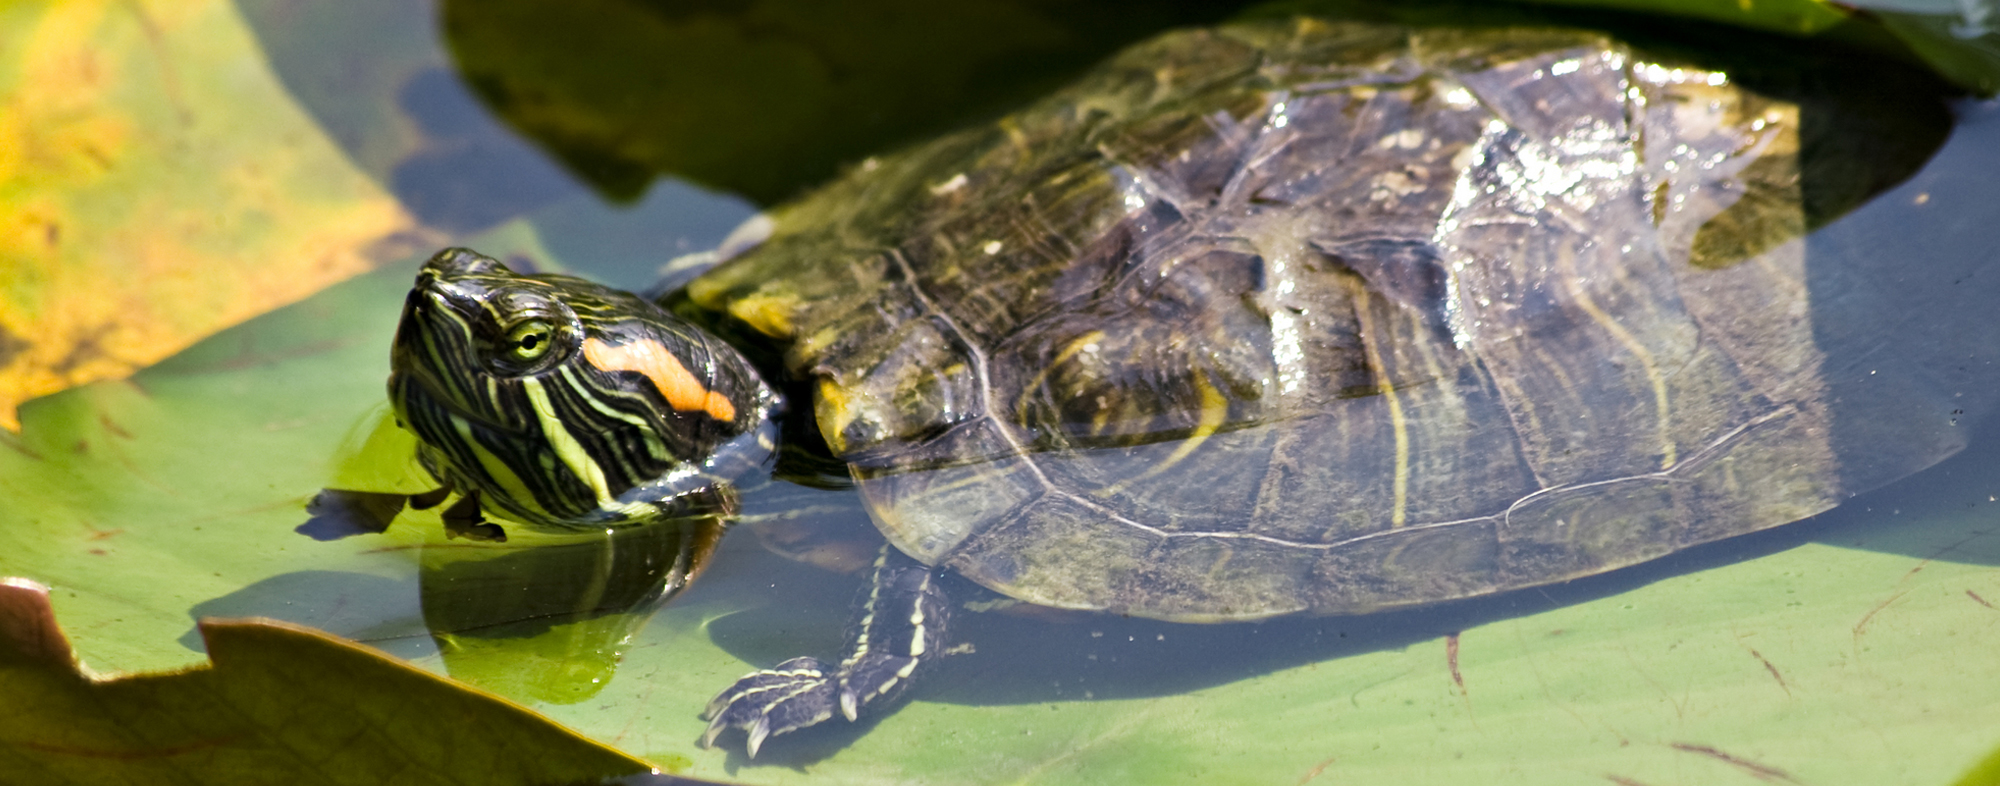 Pet aquatic turtle basking in the sunlight to absorb vitamin D3